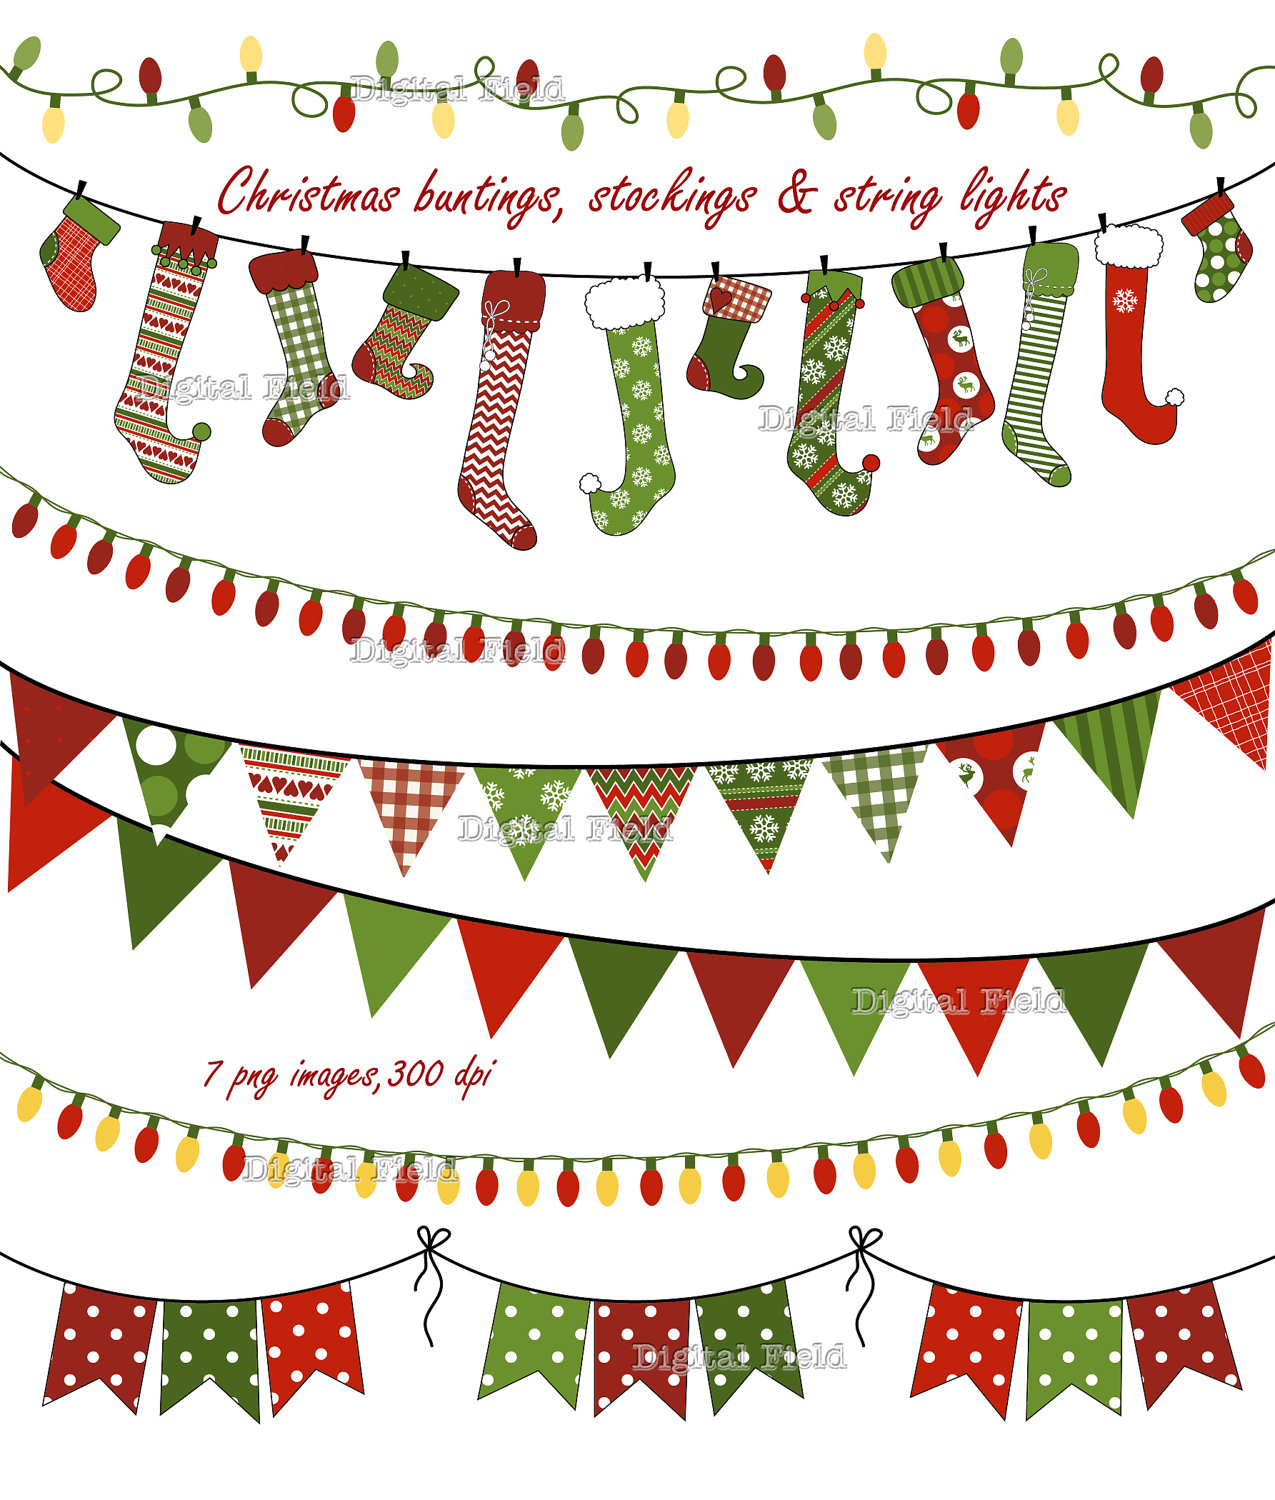 String Of Christmas Lights Clipart Black And White : Christmas Lights String Clipart Black And White Marvellous Christmas #HVYi58 - Clipart Kid